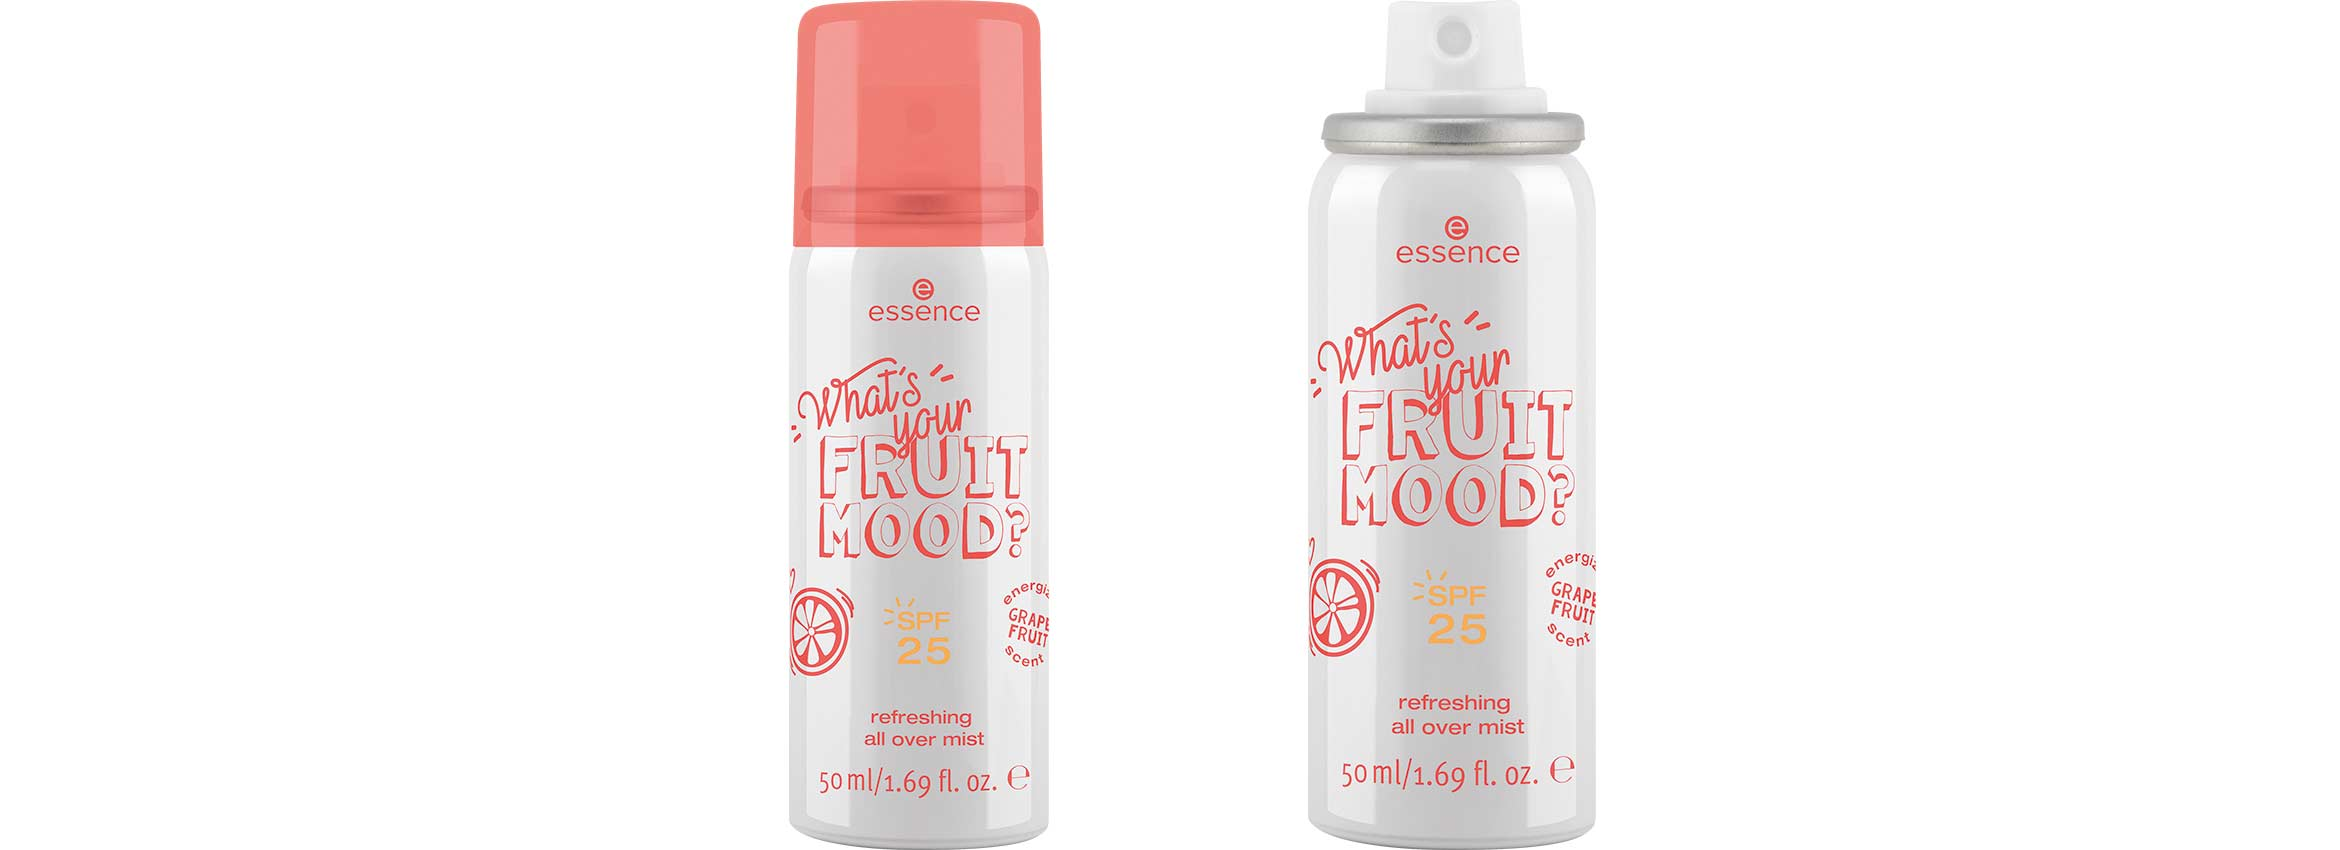 essence what's your fruit mood refreshing all over mist